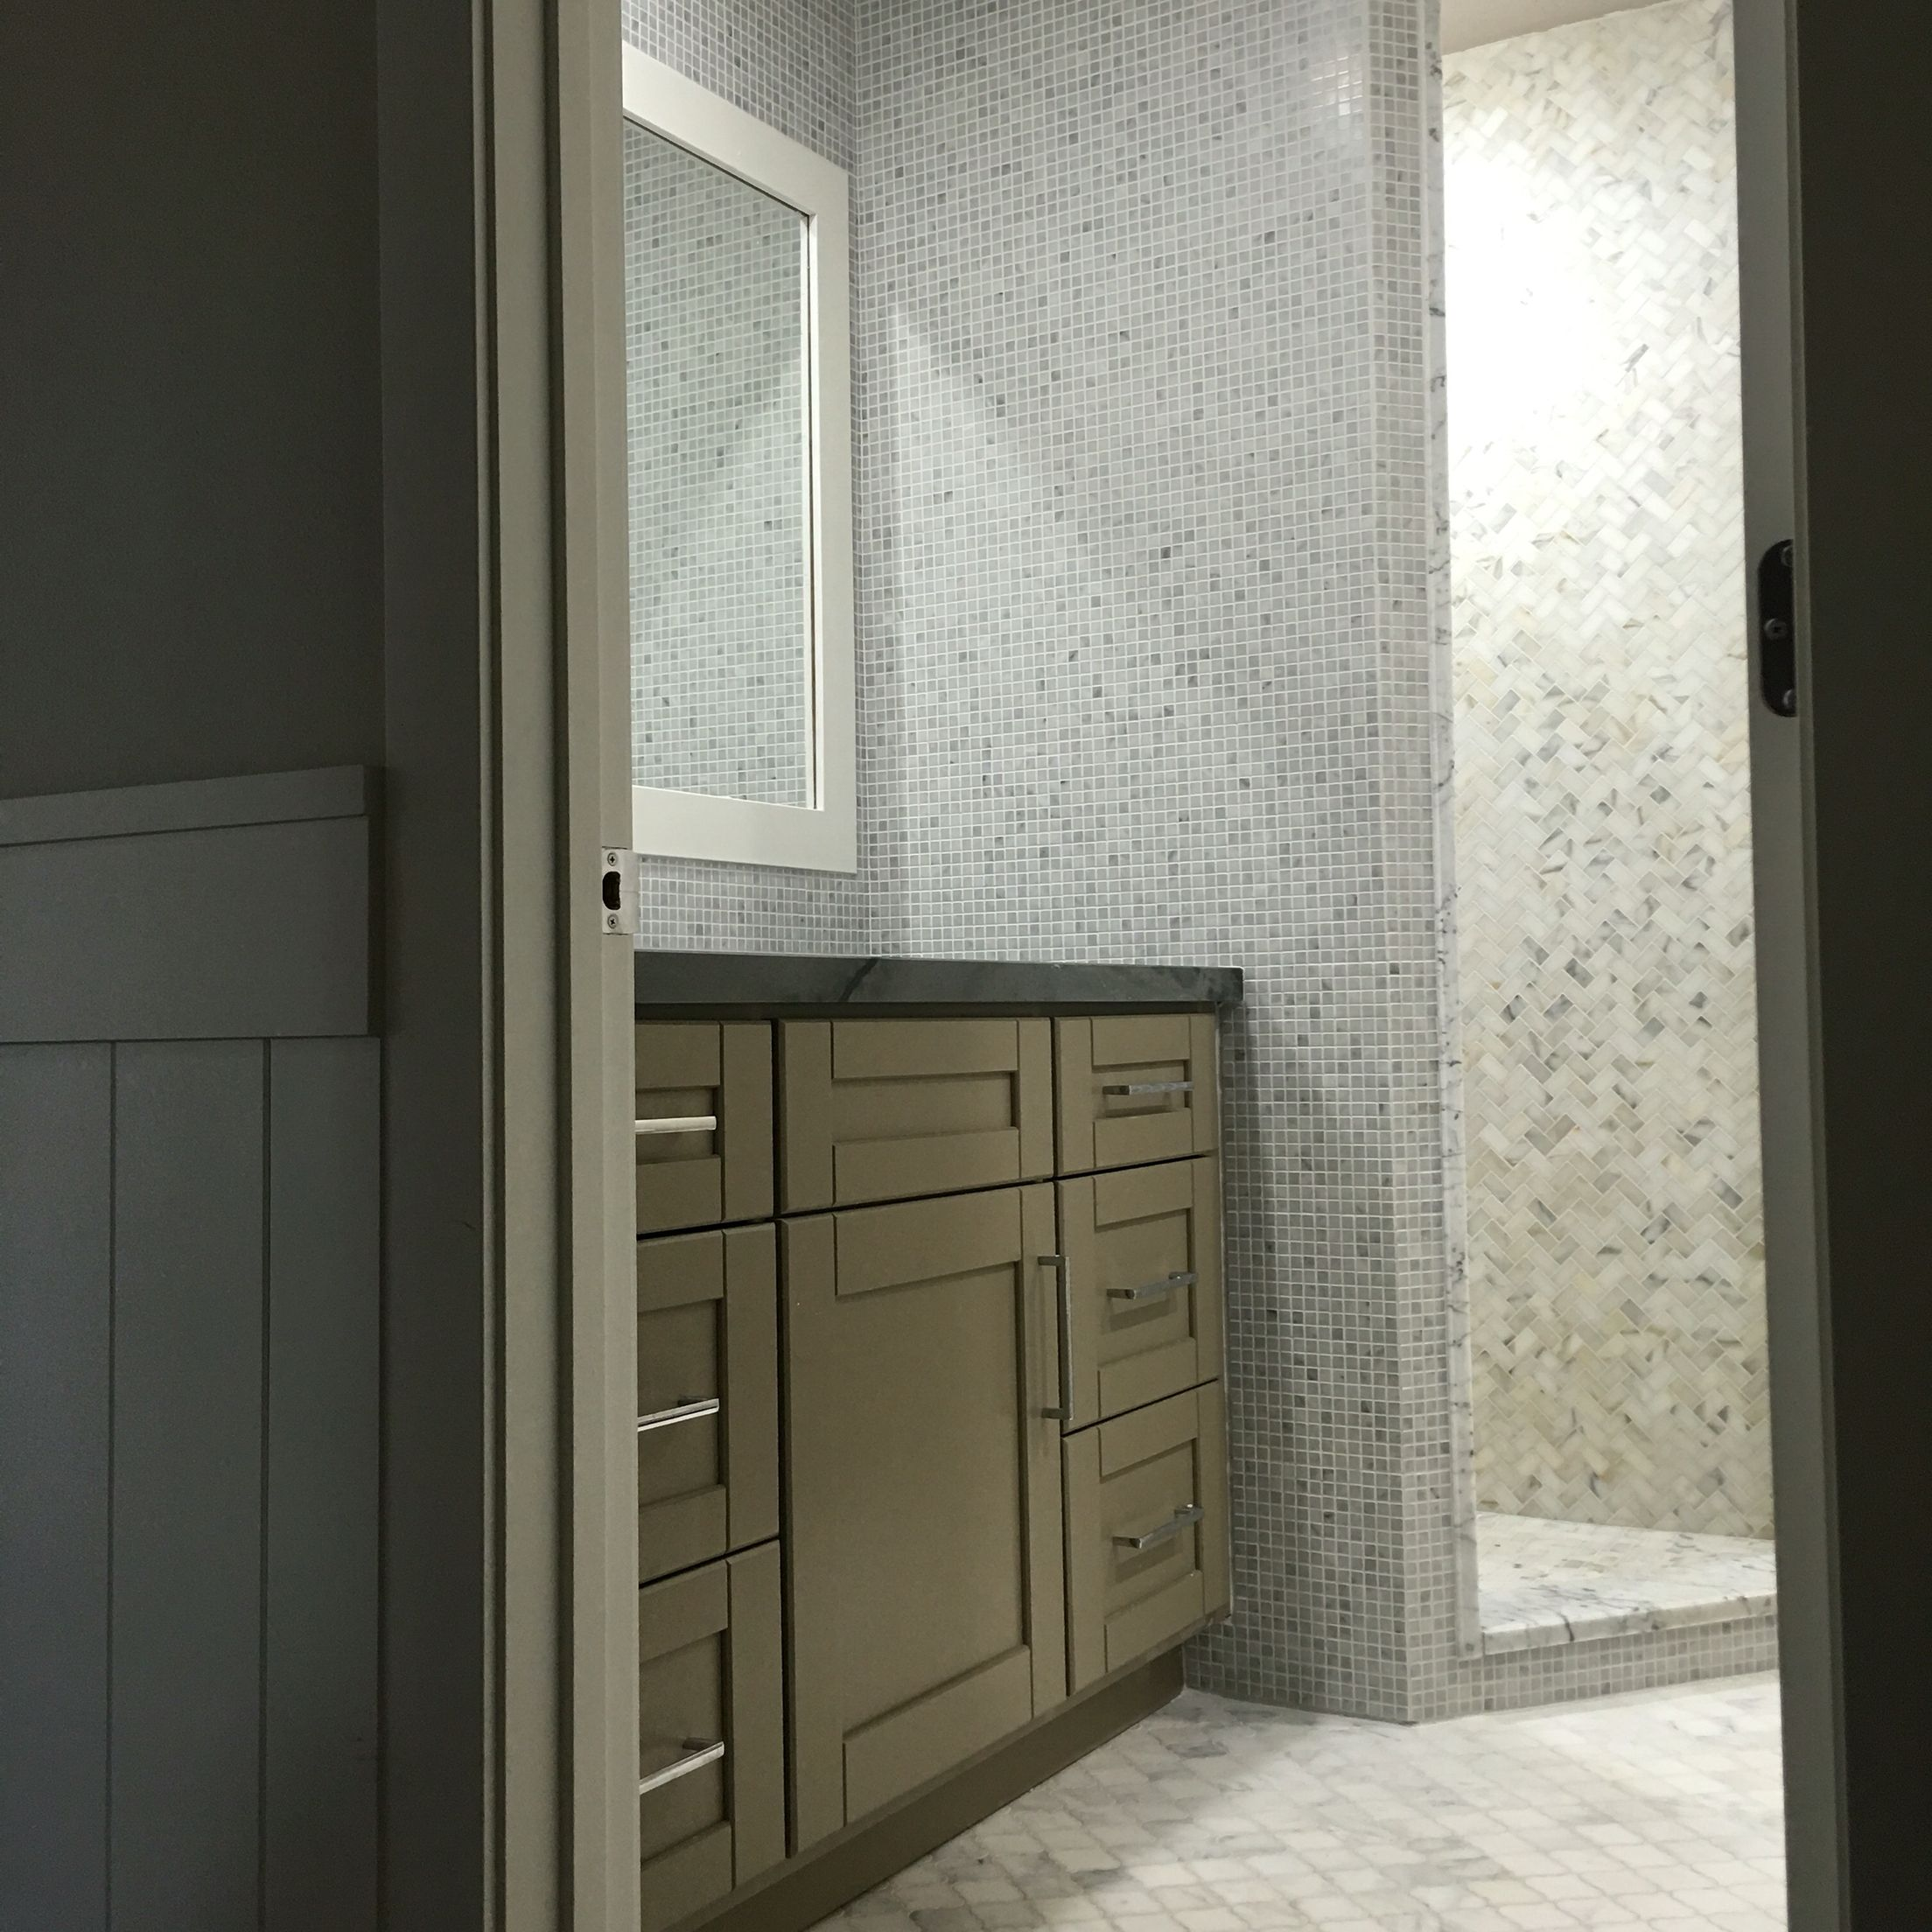 Carrara white marble arabesque mosaic floor tile heated by ditra 1x2 calacatta gold herringbone mosaic shower wall with the matching basketweave shower floor tile carrara carrera bianco 58 mosaic accent dailygadgetfo Gallery